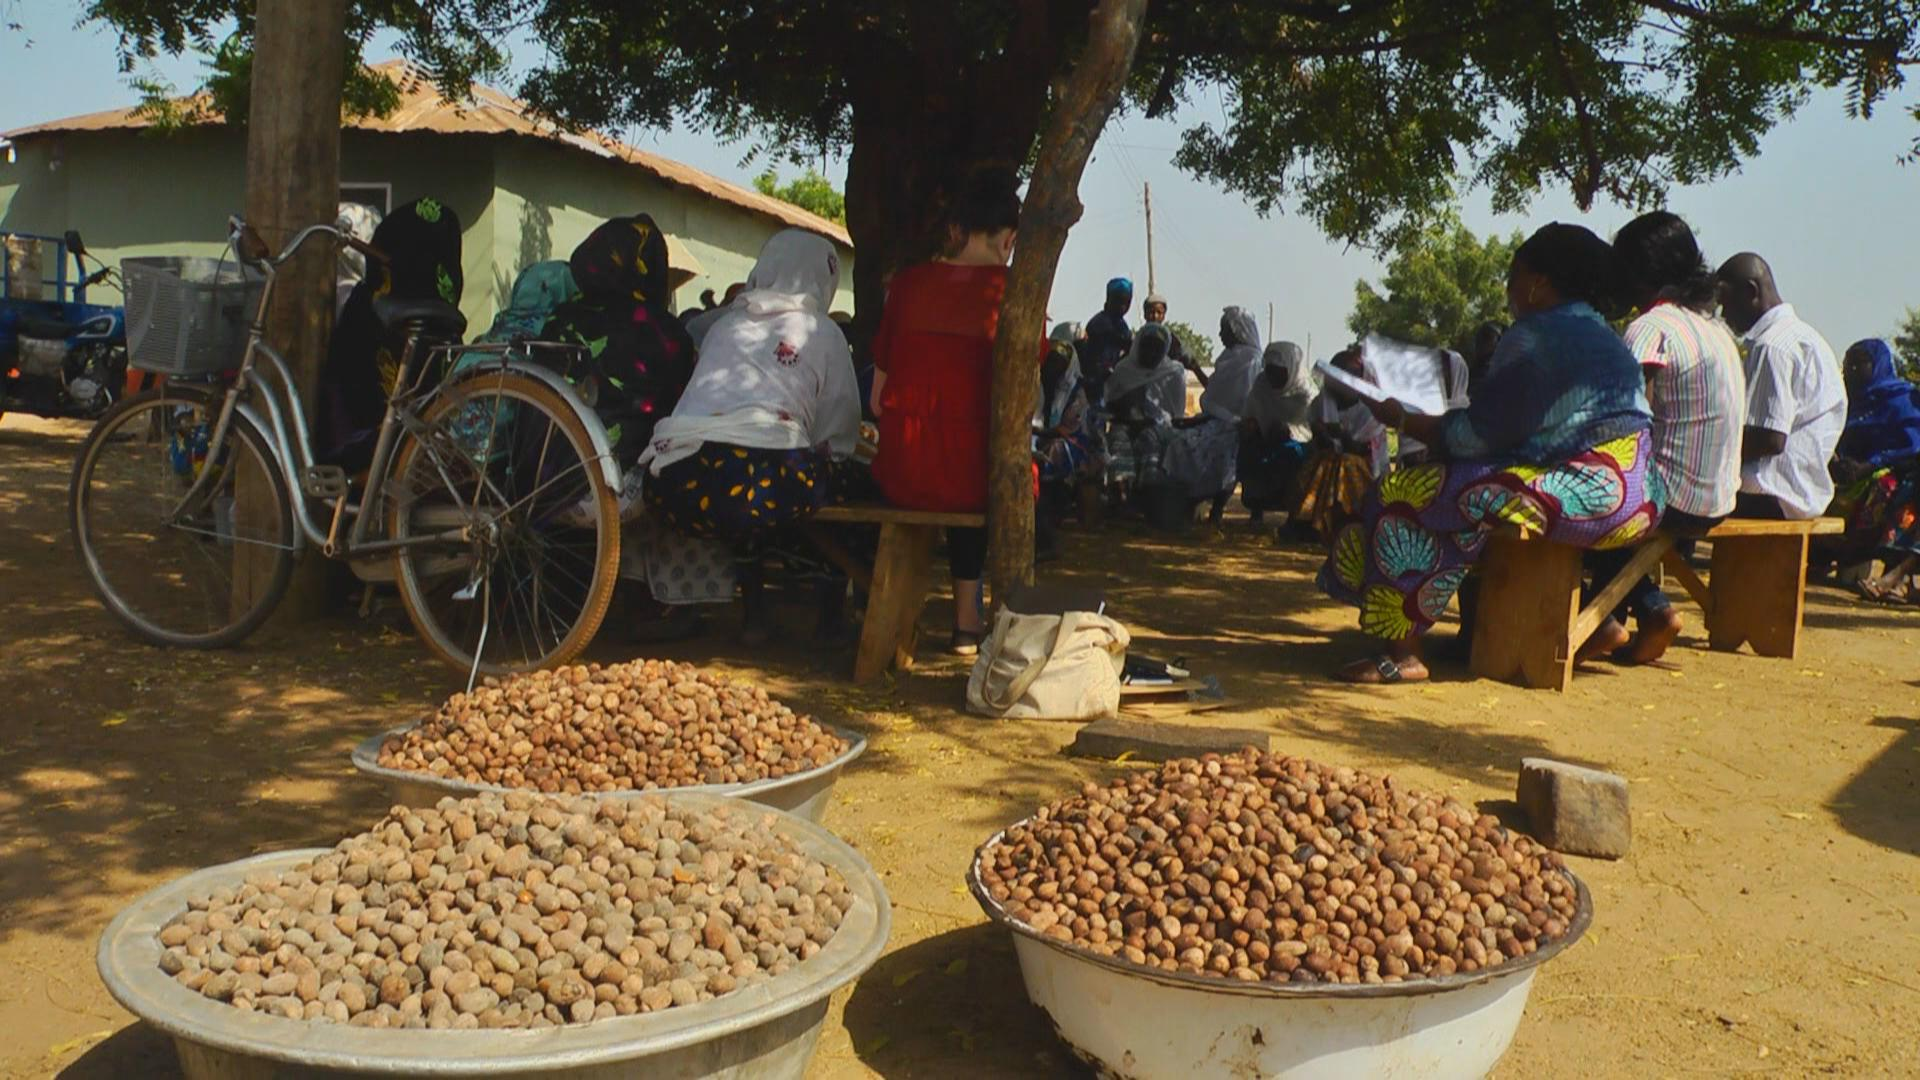 Shea nuts in front view. The women gathered in a meeting have collected the nuts from the fields.